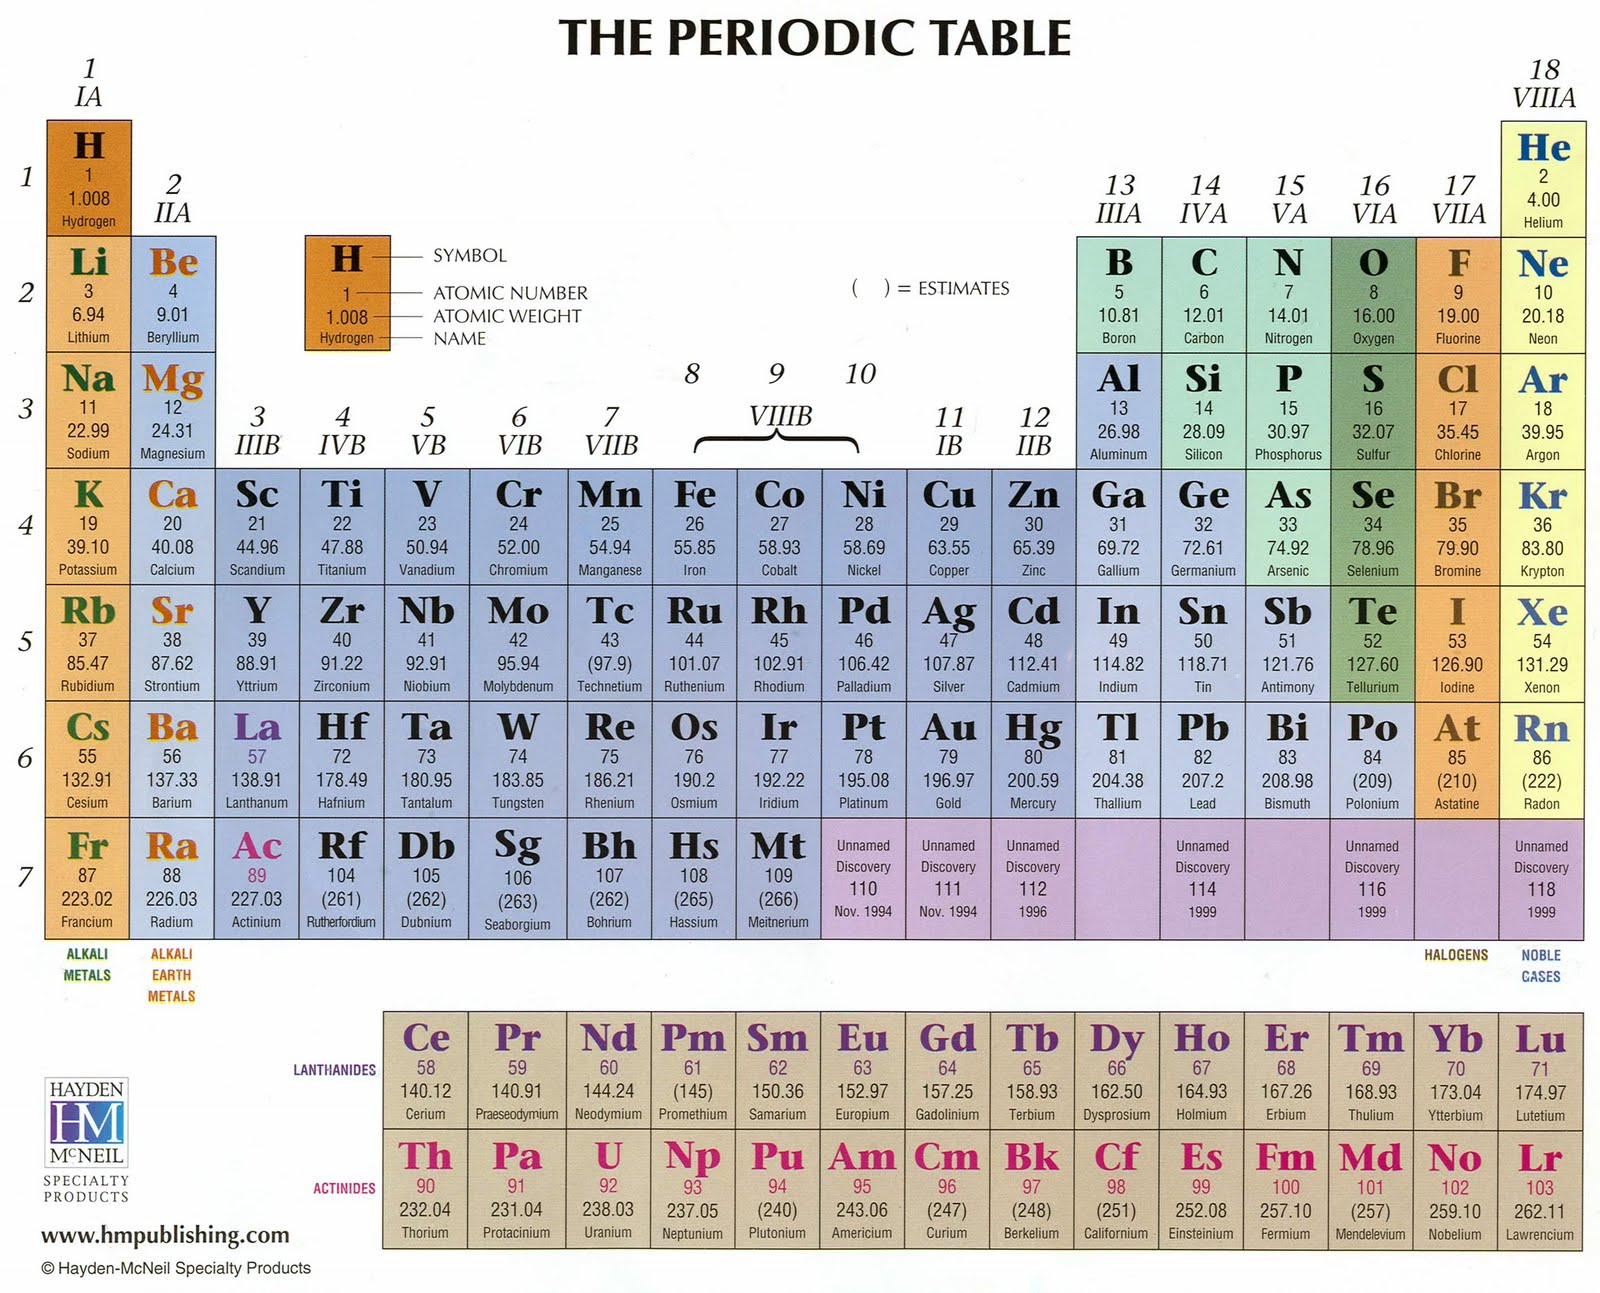 Alice in galaxyland 2009 the periodic table in the stars gamestrikefo Image collections